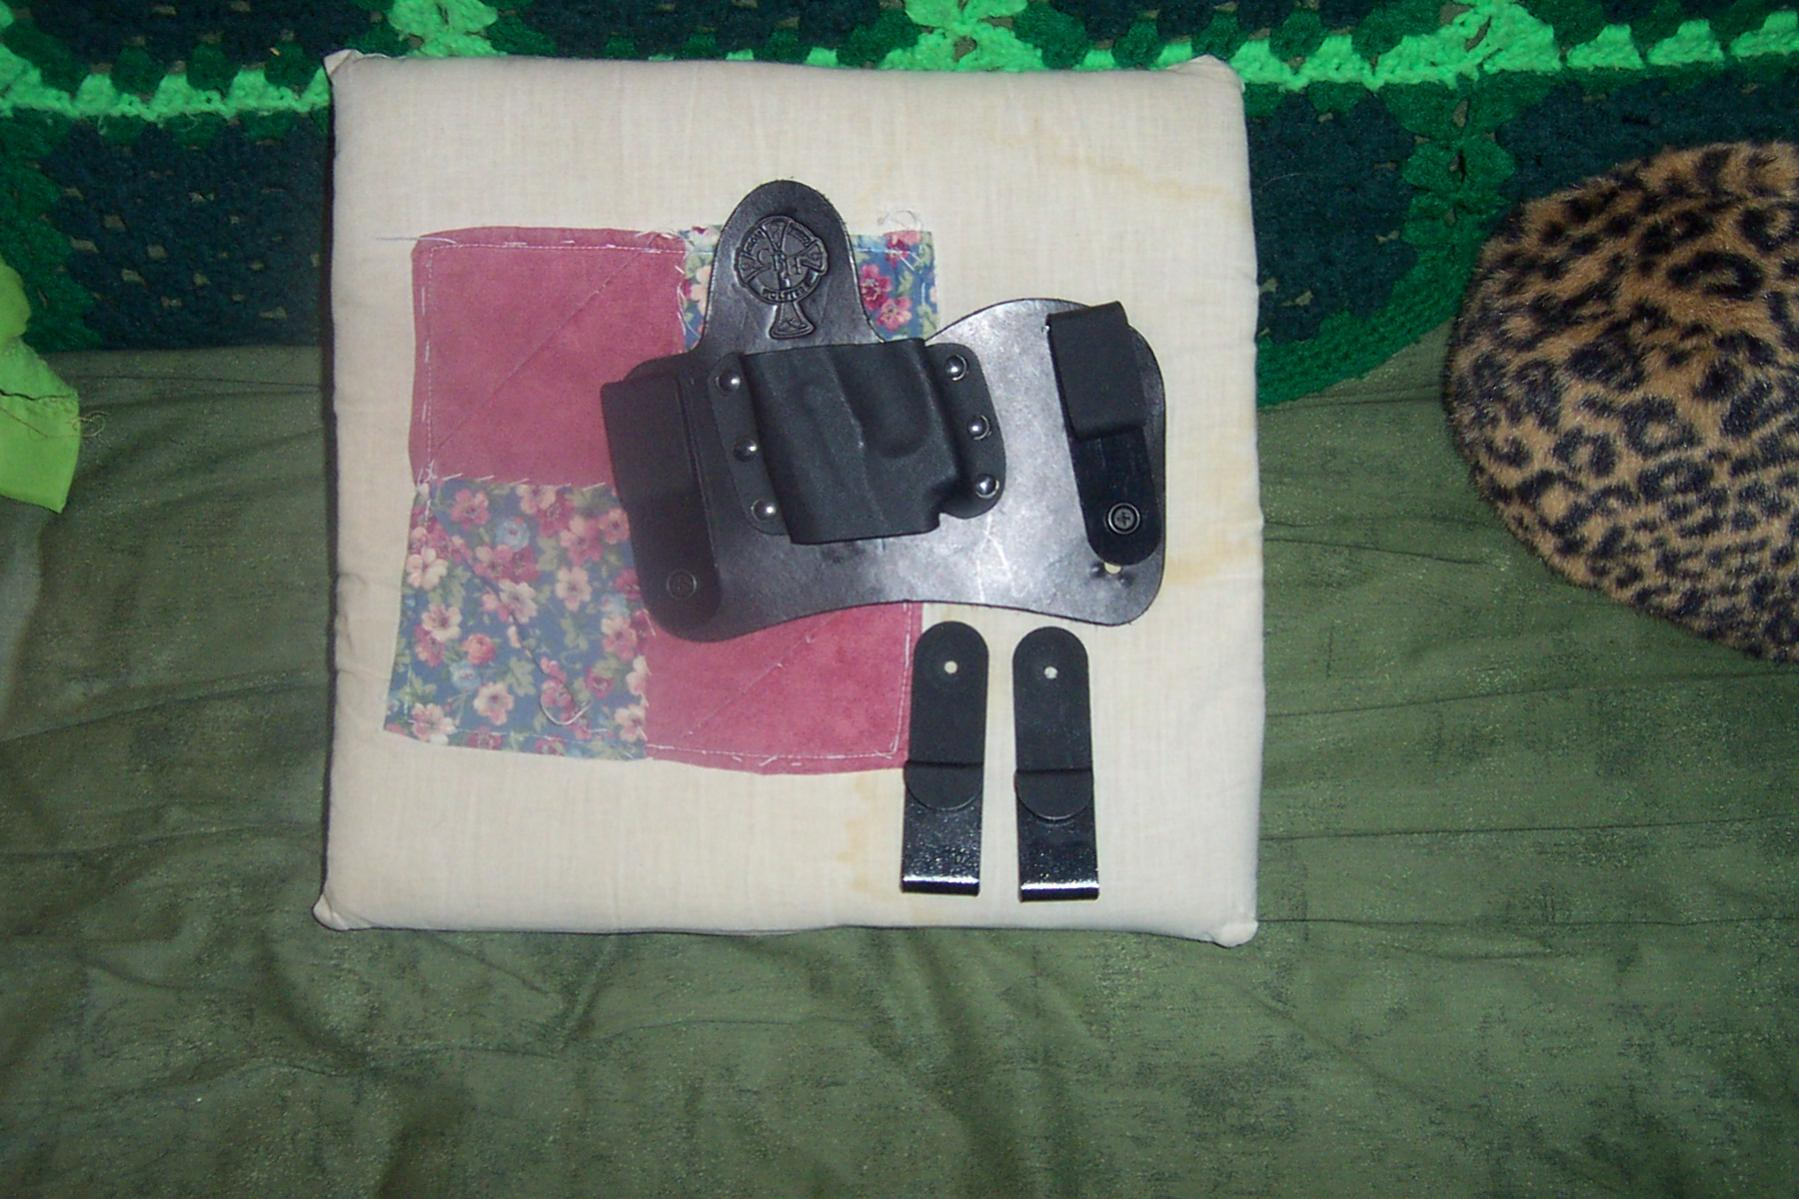 WTS Crossbreed Mini Tuck L/H IWB Holster for Ruger LCP w/ Crimson Trace : Upstate NY-crossbreedminituck.jpg